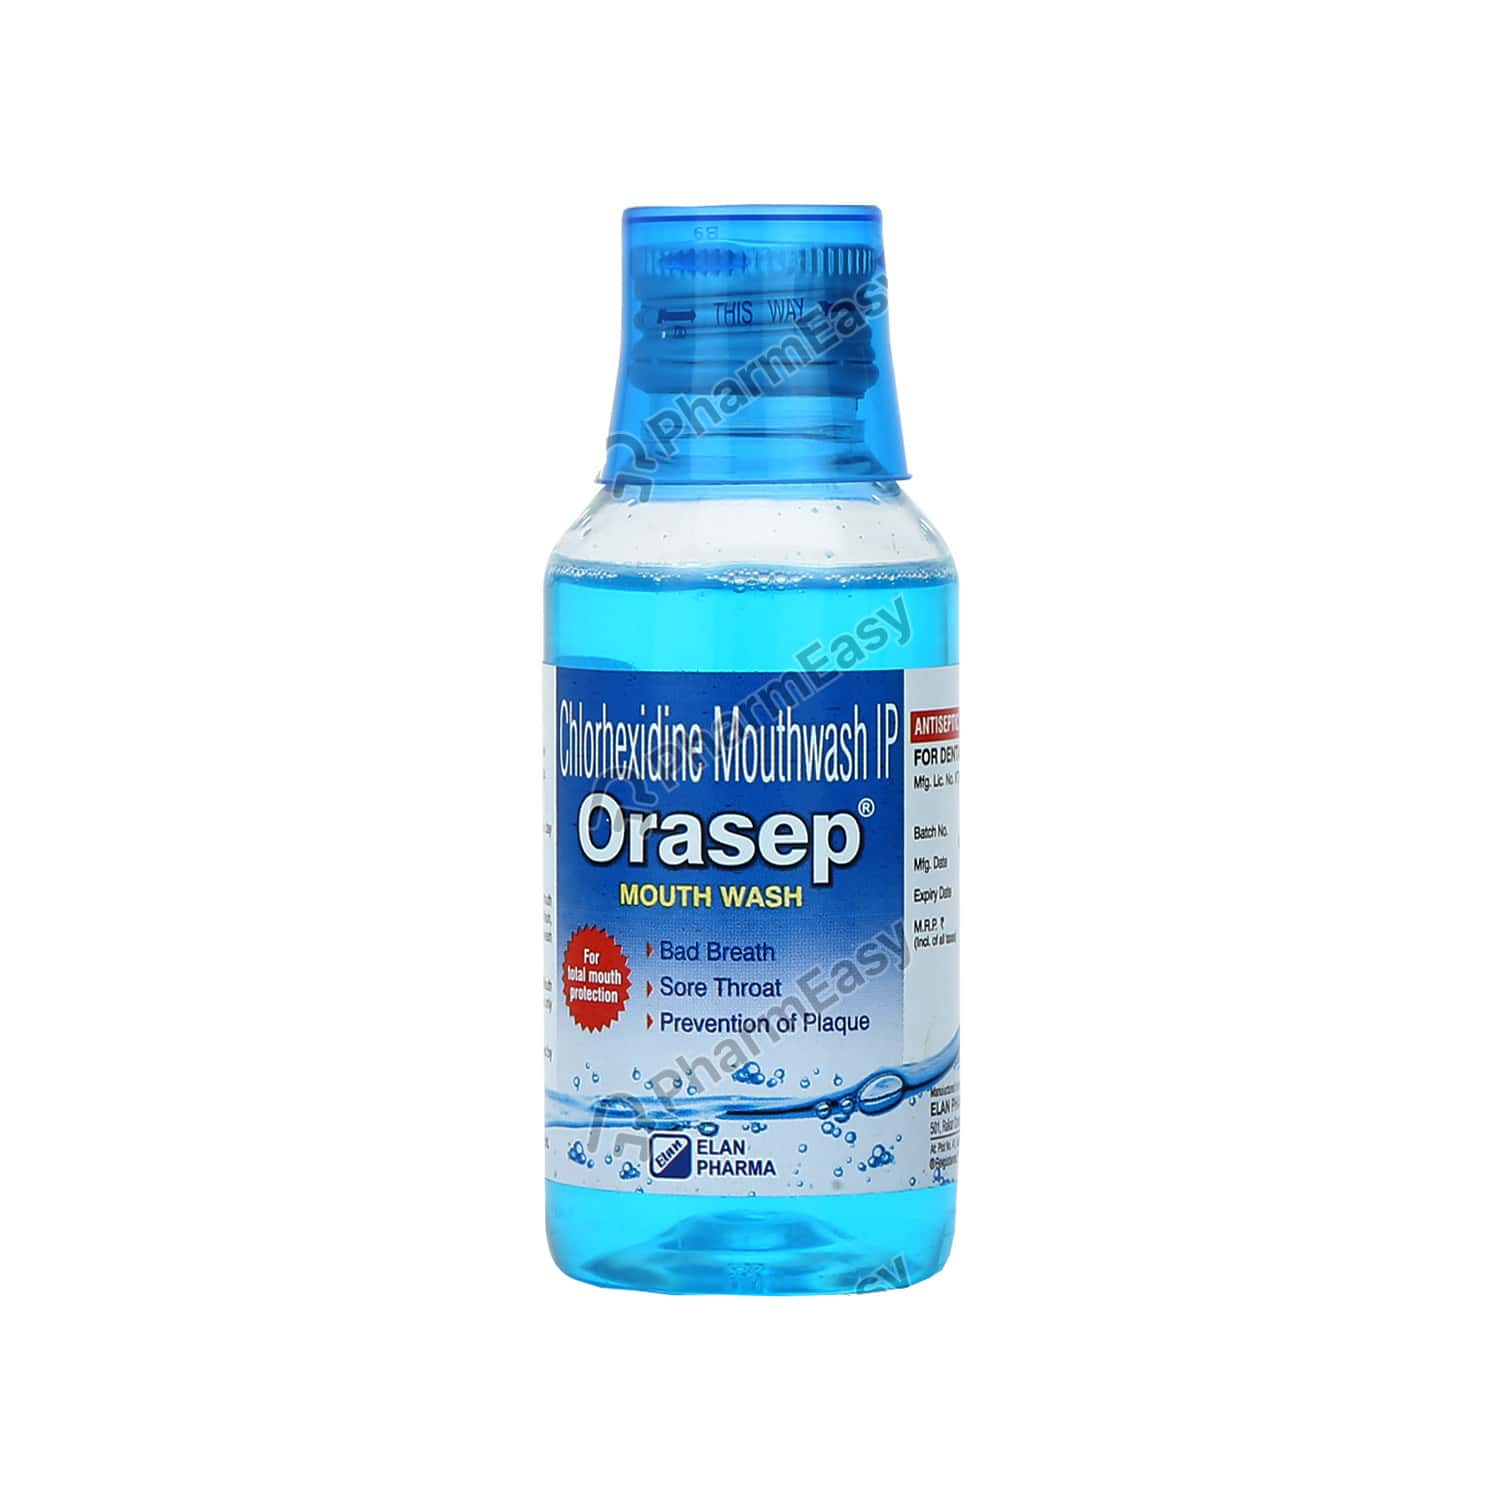 Orasep Mouthwash Liquid